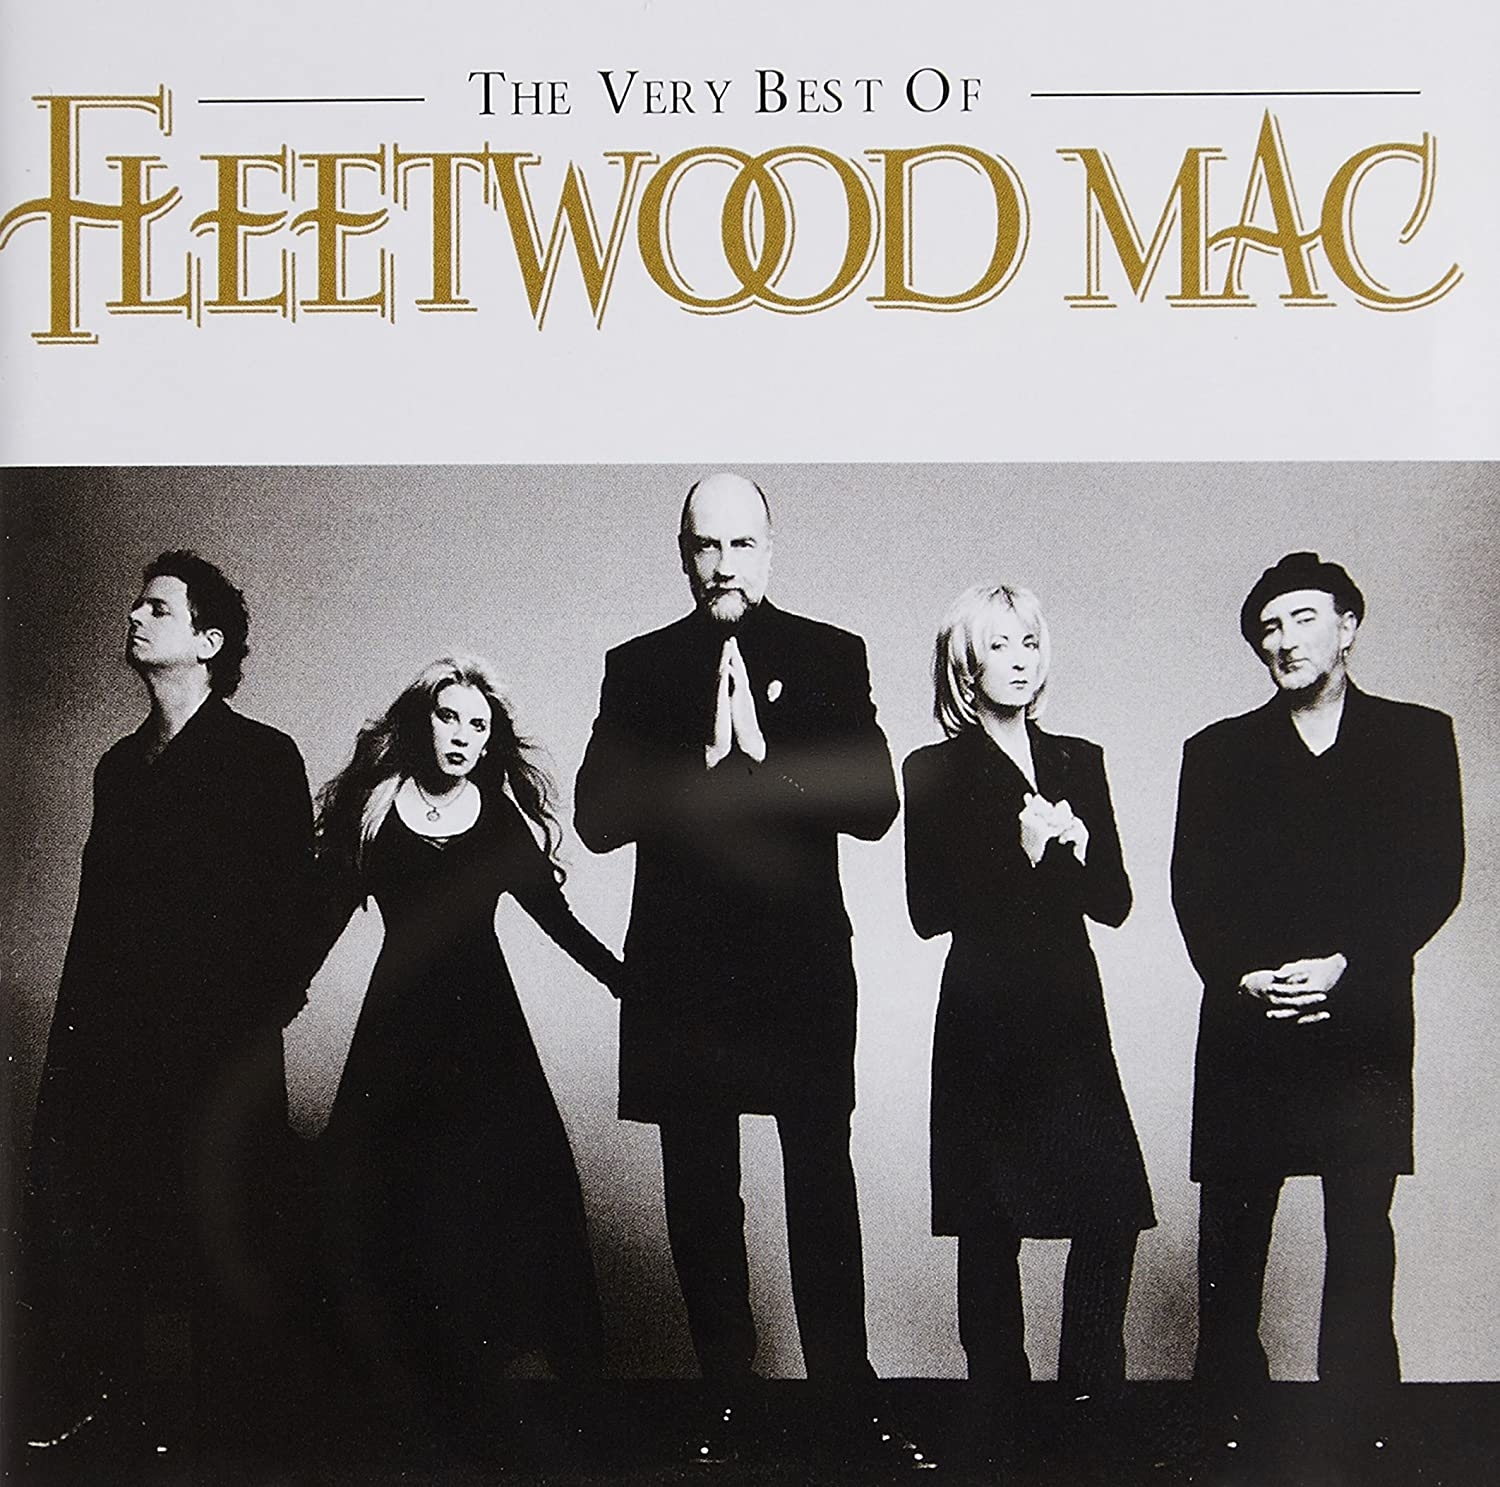 the very best of fleetwood mac album lyrics